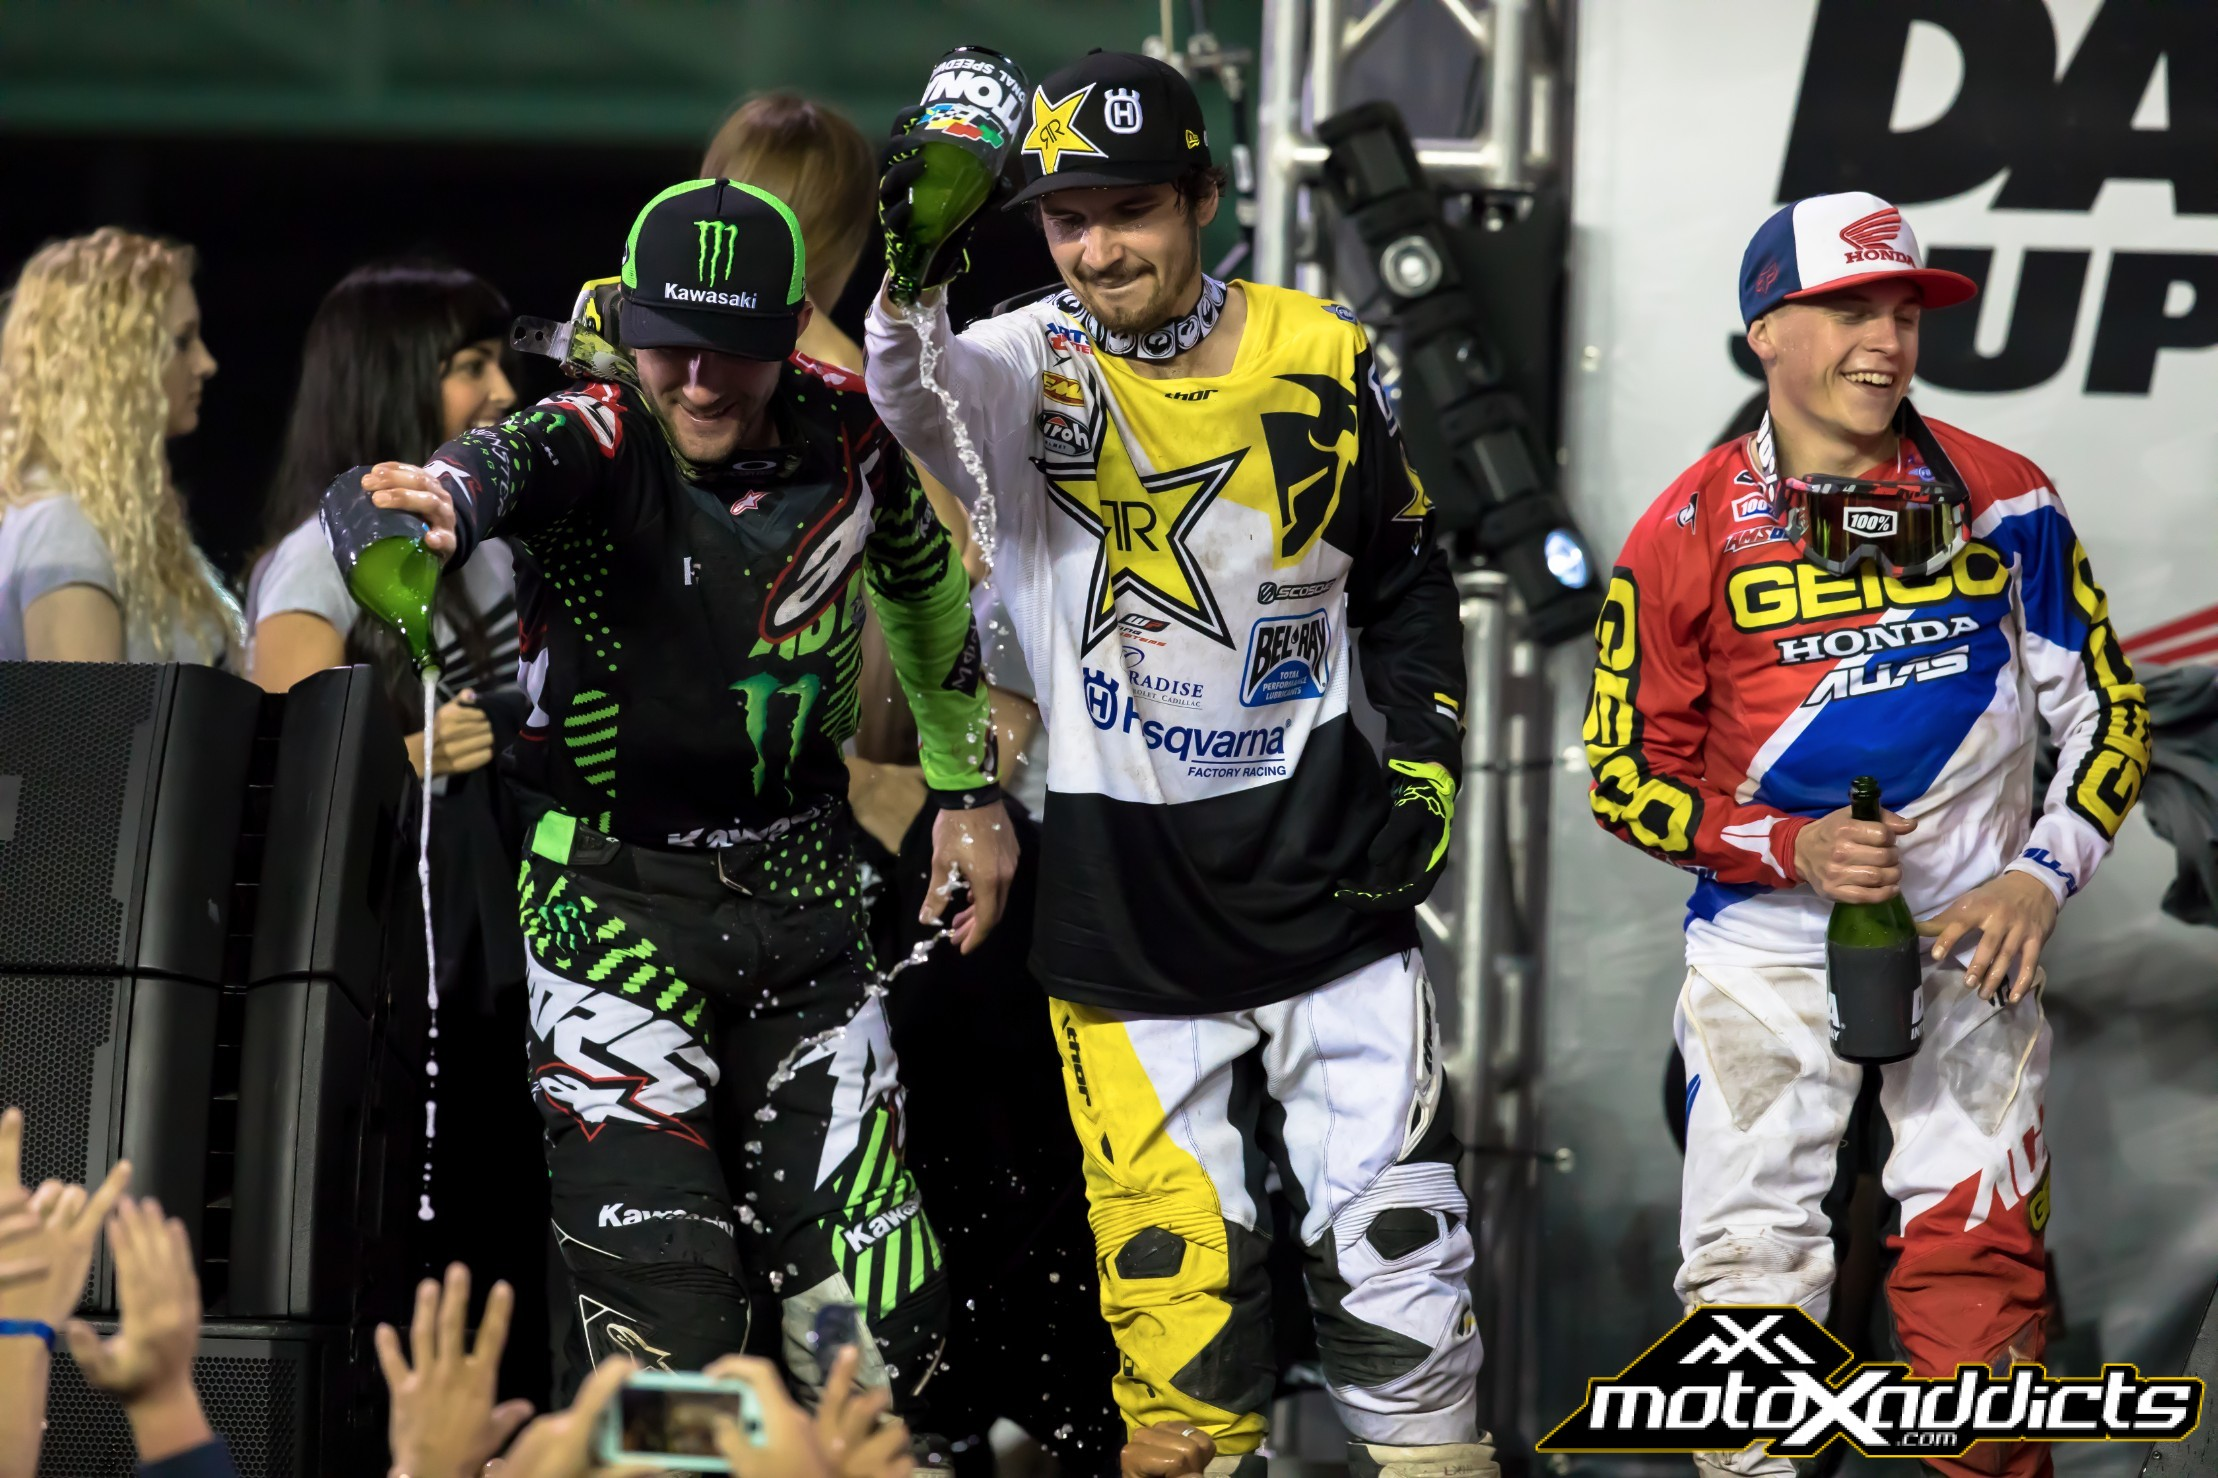 The 450SX podium from the 2017 Daytona SX. 1st: Eli Tomac (left)  2nd: Jeremy Martin (right)  3rd: Jason Anderson (center)